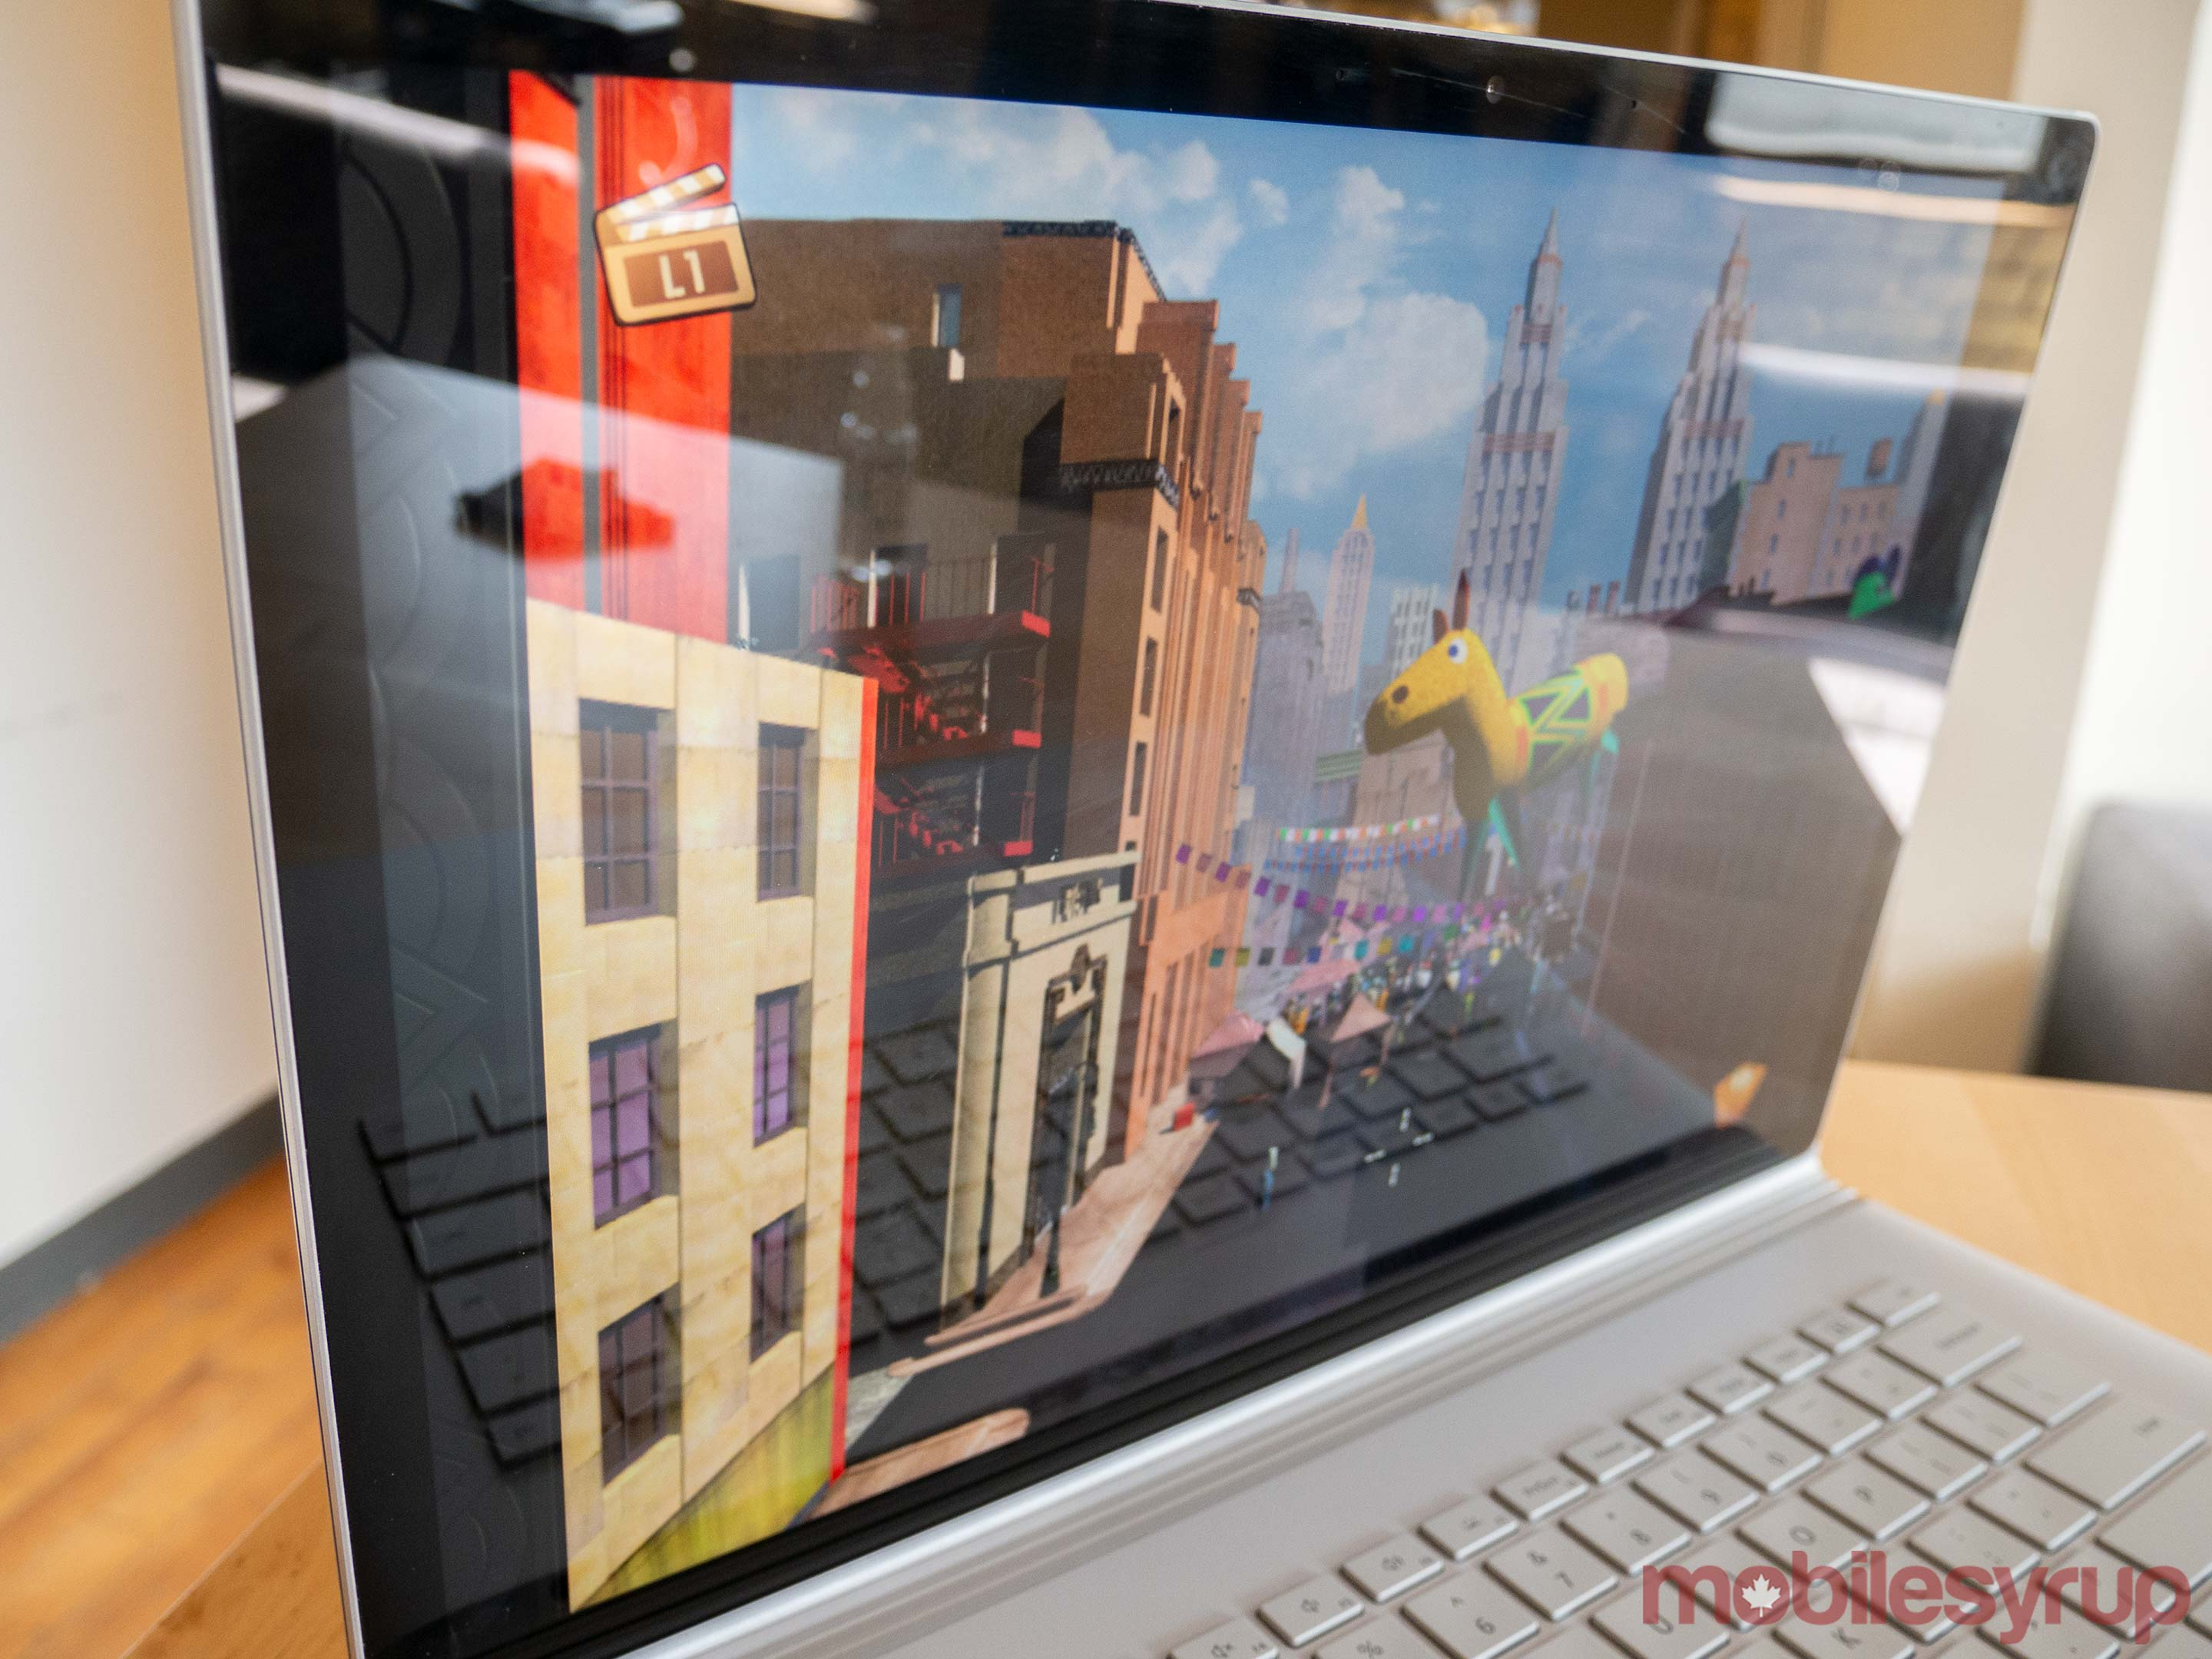 Why I chose a Surface Book and not a MacBook